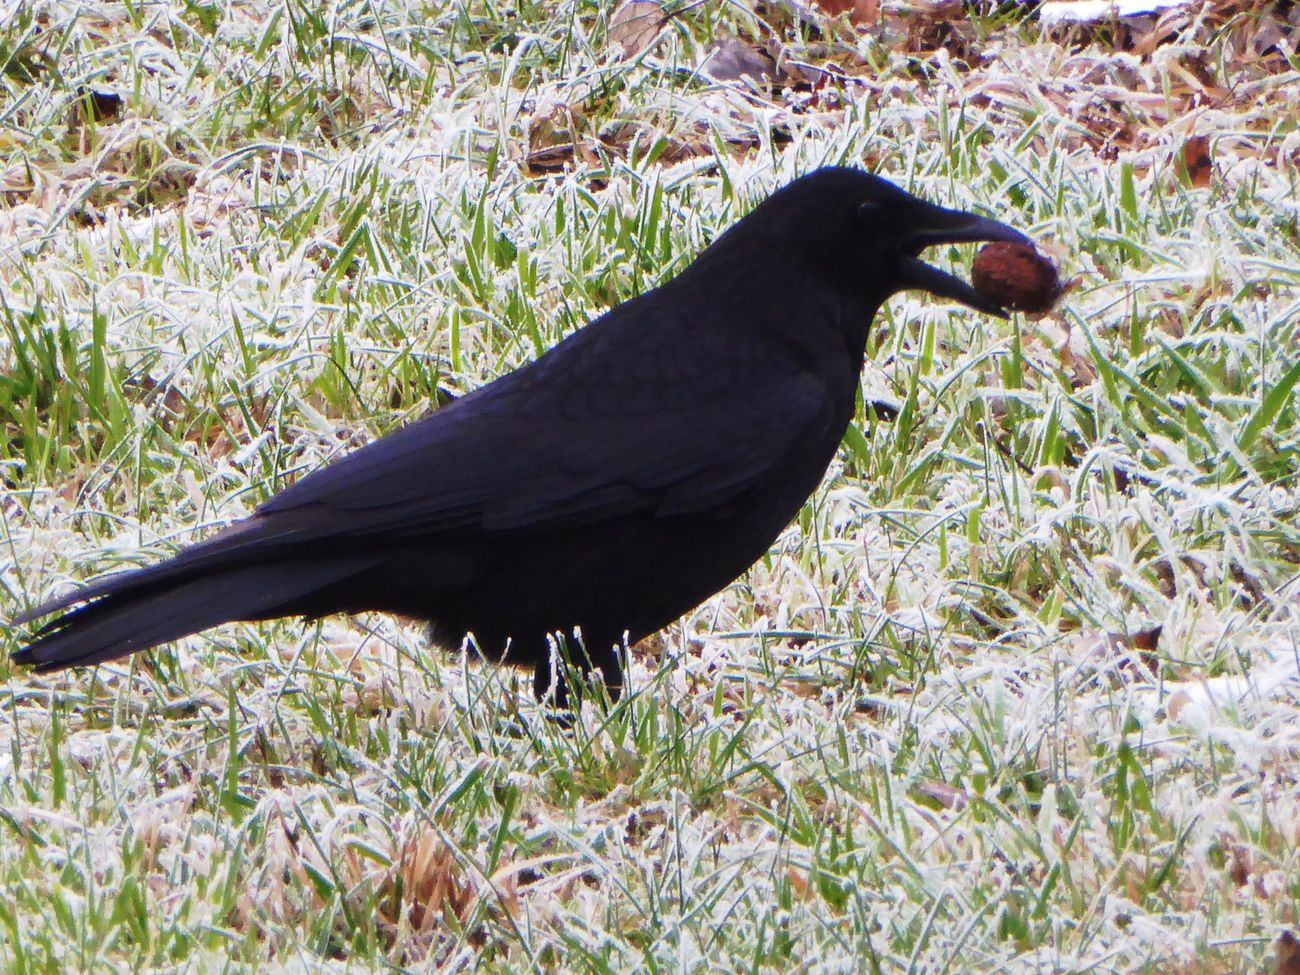 Crow Playing For My Friends 😍😘🎁 Animals In The Wild Brrrrrrrrr❄❄❄❄ Early Bird Beauty In Nature Animal Themes Frozen Ground Beauty In My Every Day Life Frosty ⛄ Cold Outside ❄⛄  Wintertime ⛄ On My Way To Work Close-up Crowlovers Animal Wildlife Nature Enjoying The View